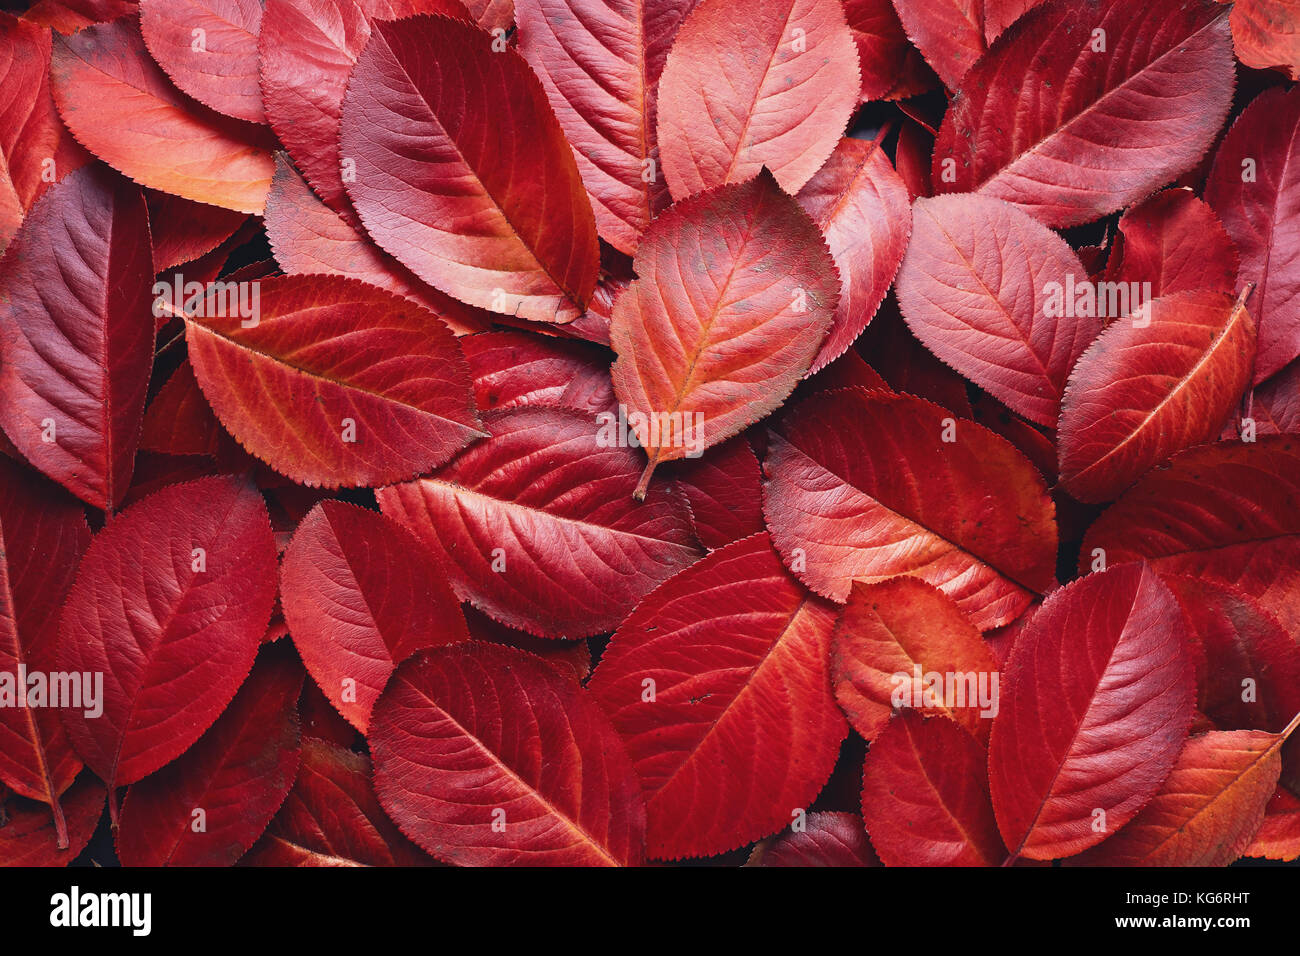 Closeup of Red Aronia Autumn leaves background texture. Red Autumn Leaves Background. Aronia melanocarpa (Chokeberry) - Stock Image